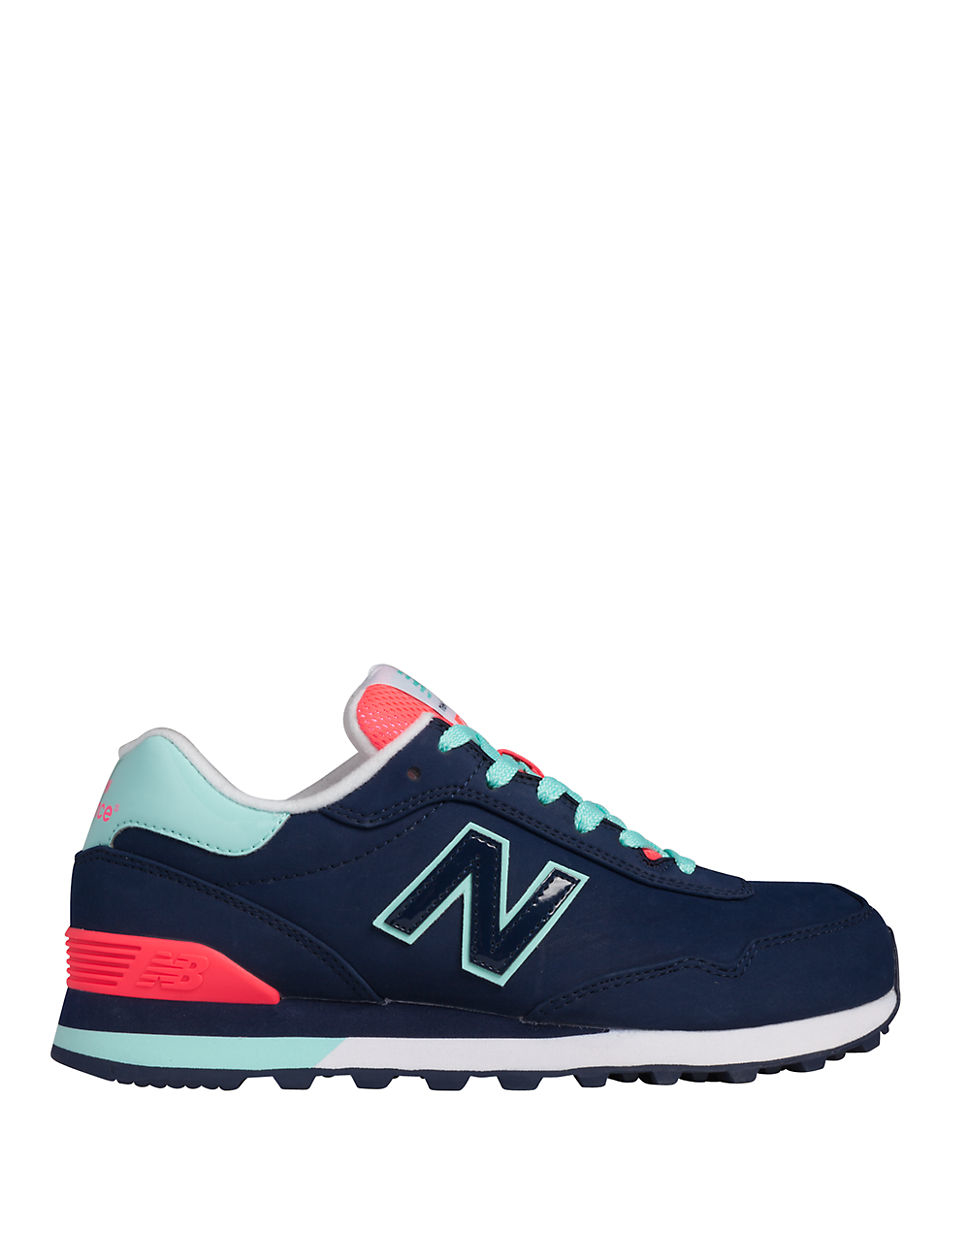 lace-up sneakers - Blue New Balance Vd5aSKIs